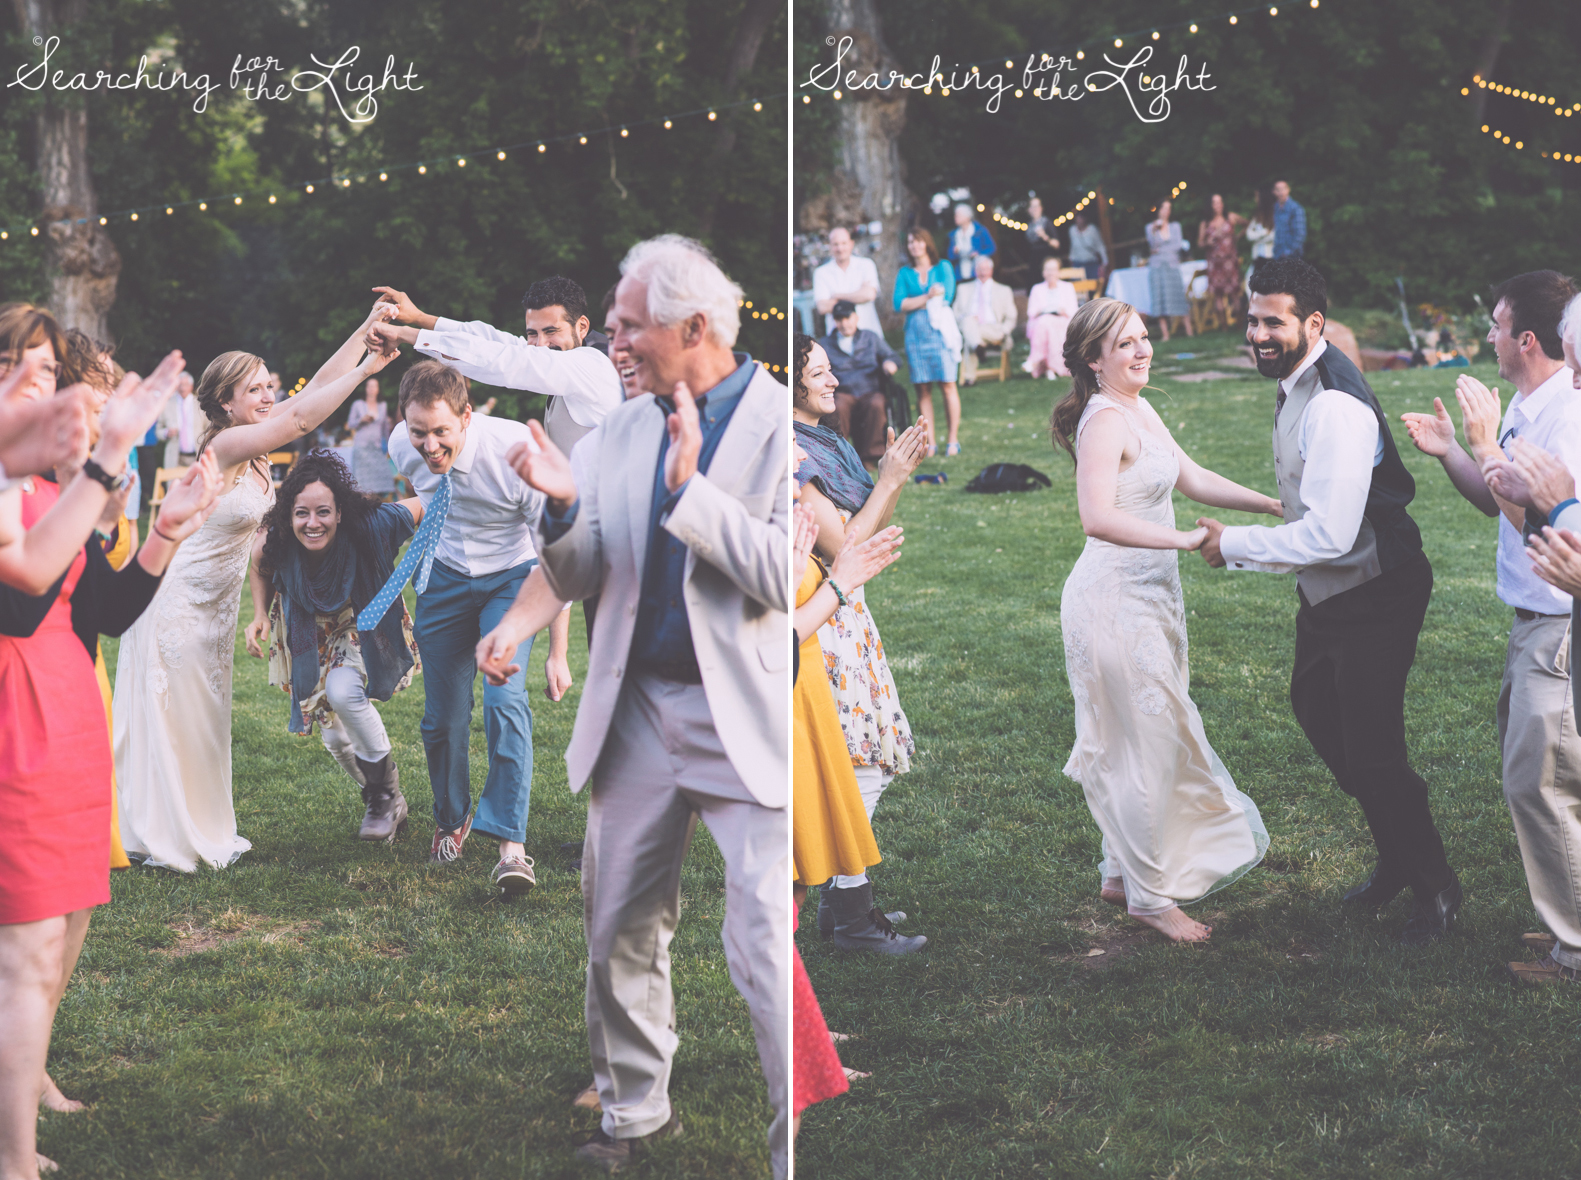 lyons farmette wedding photo, colorado wedding photographer, denver wedding photographer, line dancing at a reception